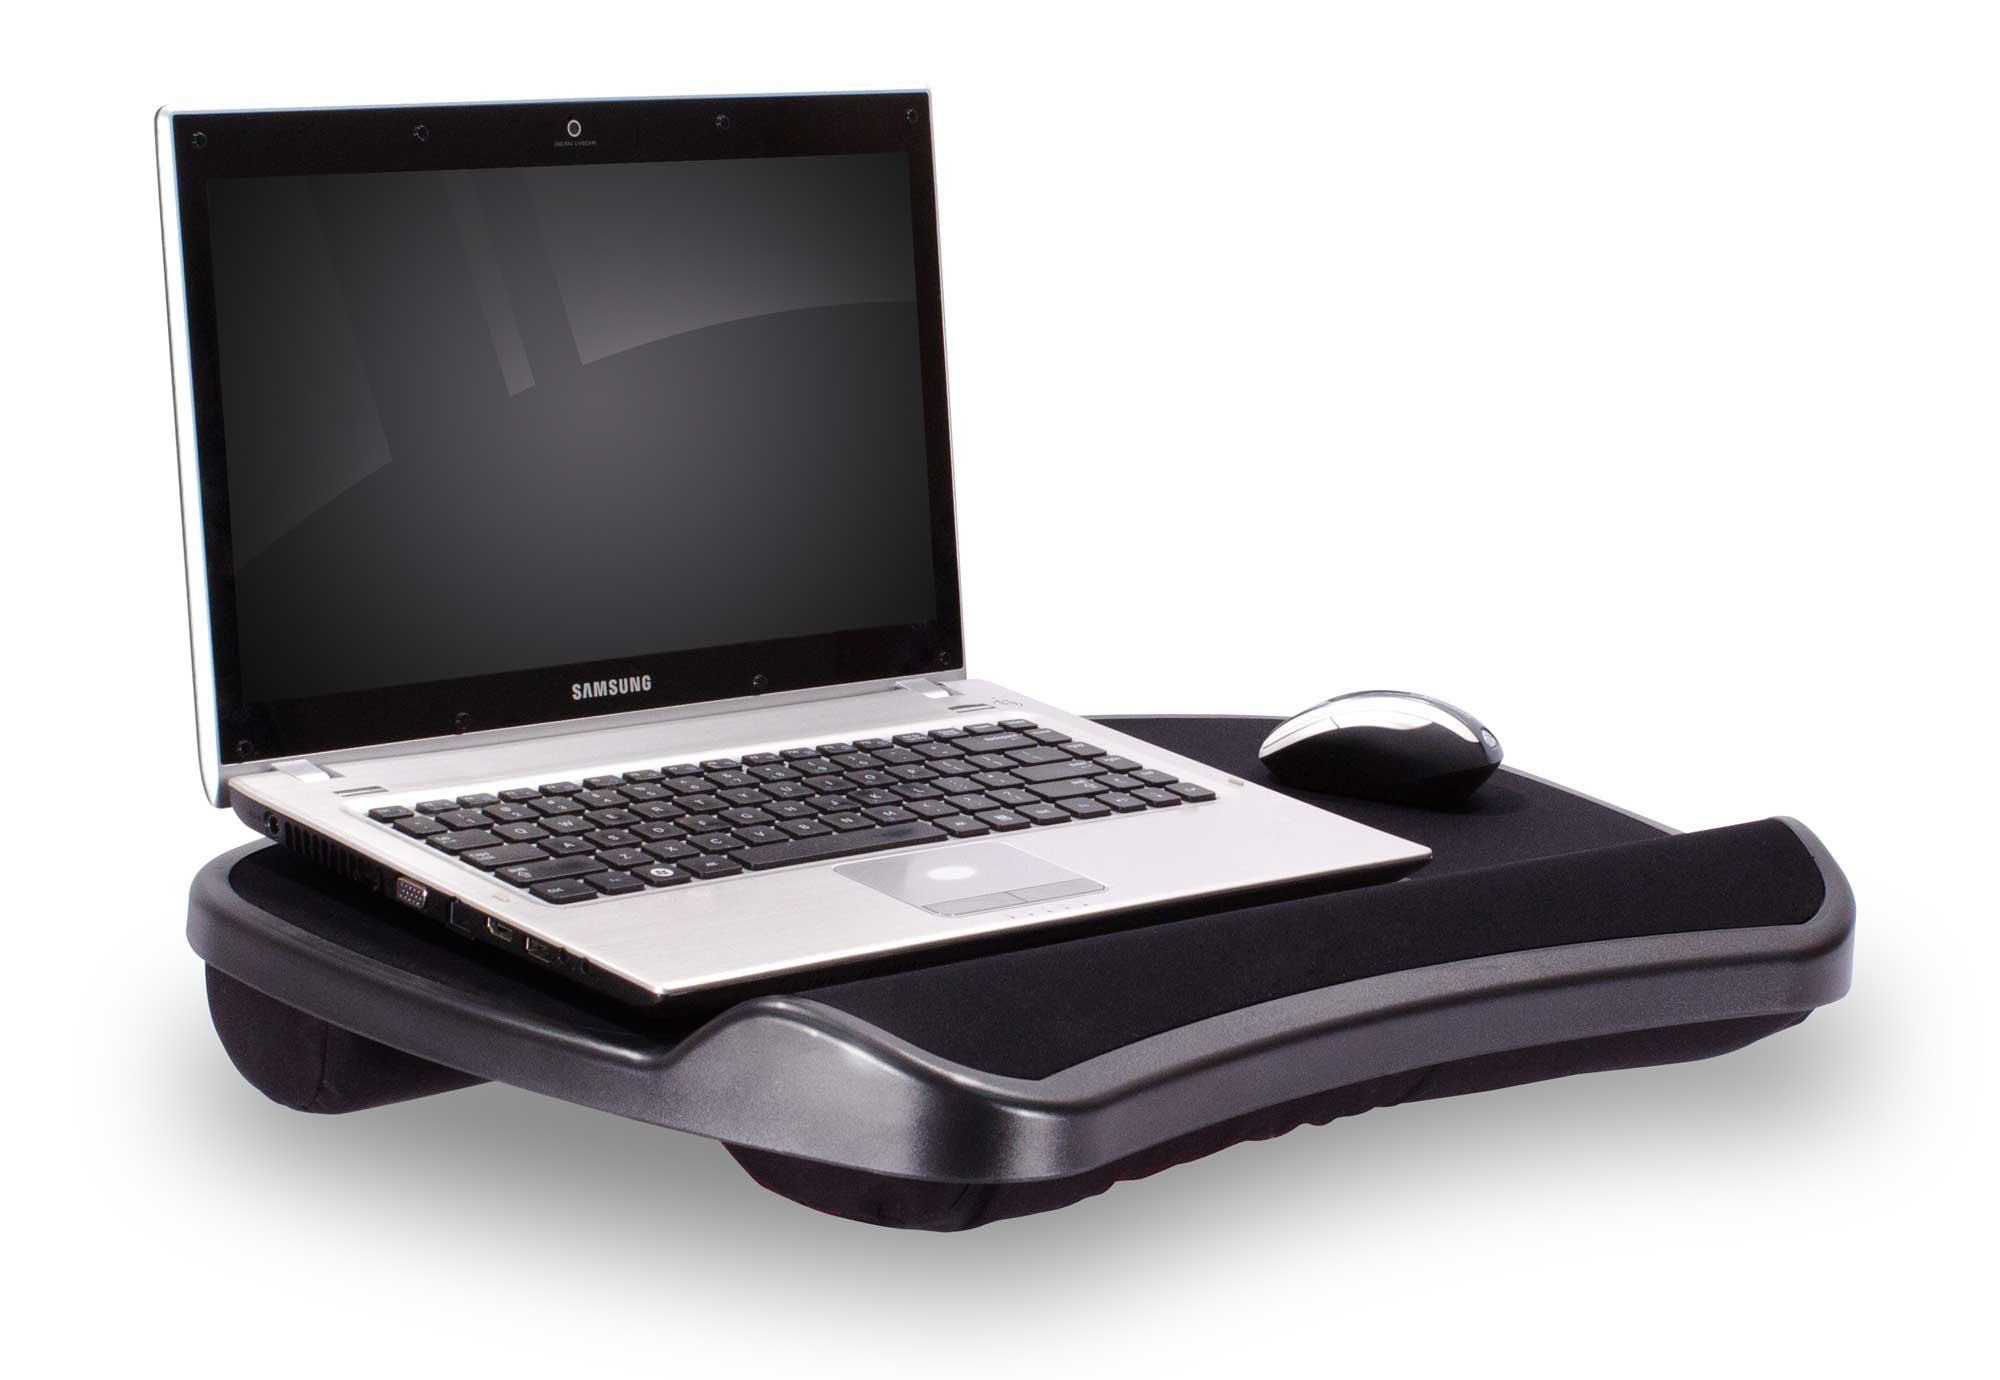 Stylish deluxe lapdesk for laptop in solid black